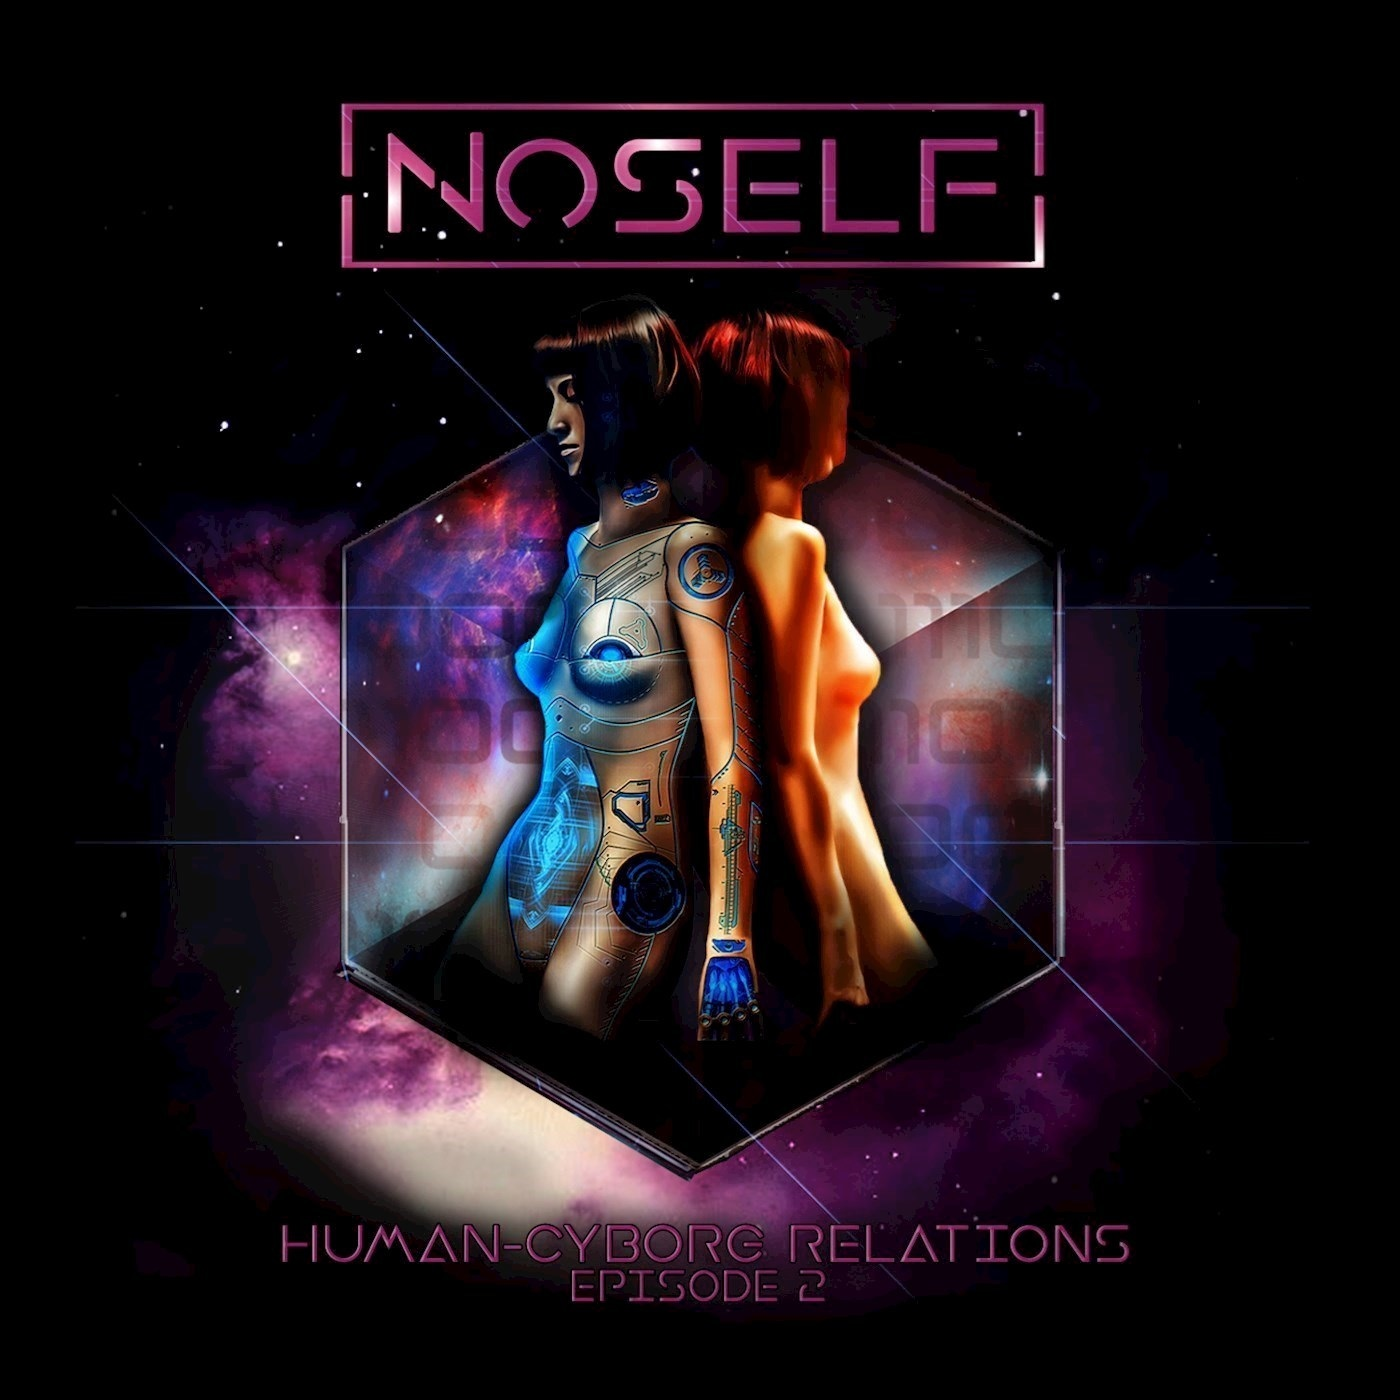 NoSelf - Human-Cyborg Relations Episode 2 [EP]